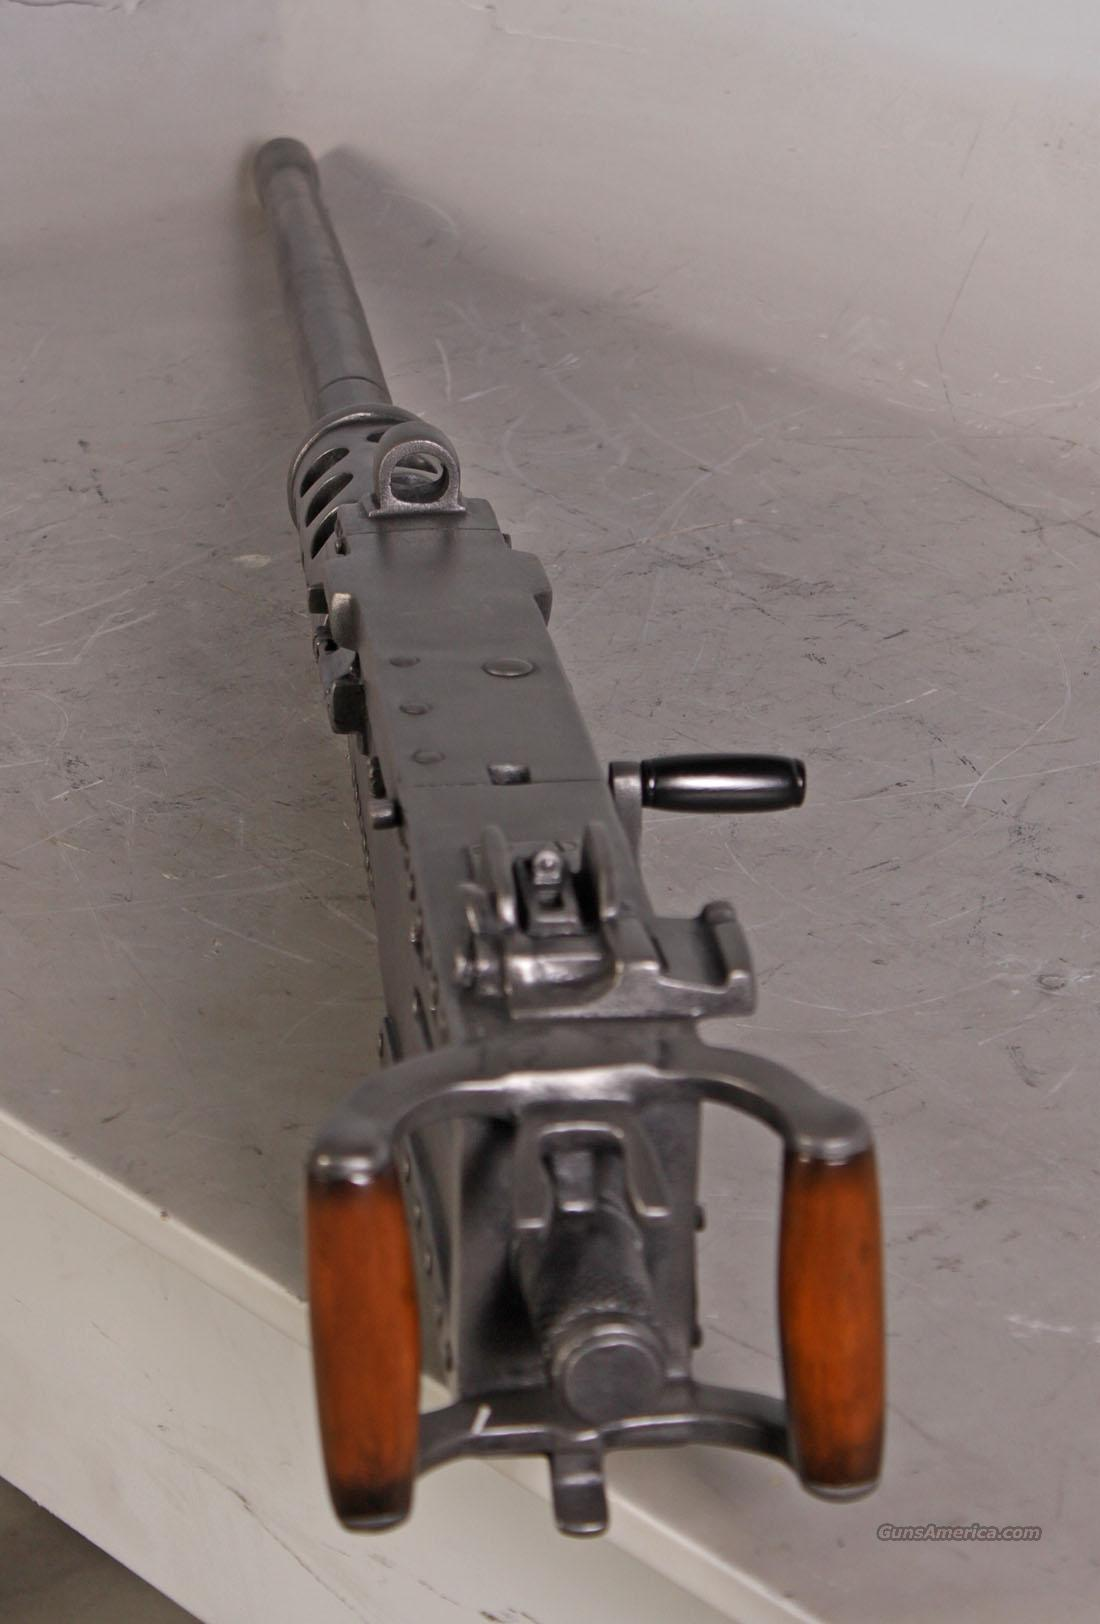 M2 Browning 50 Cal Replica Machine gun has no moving parts